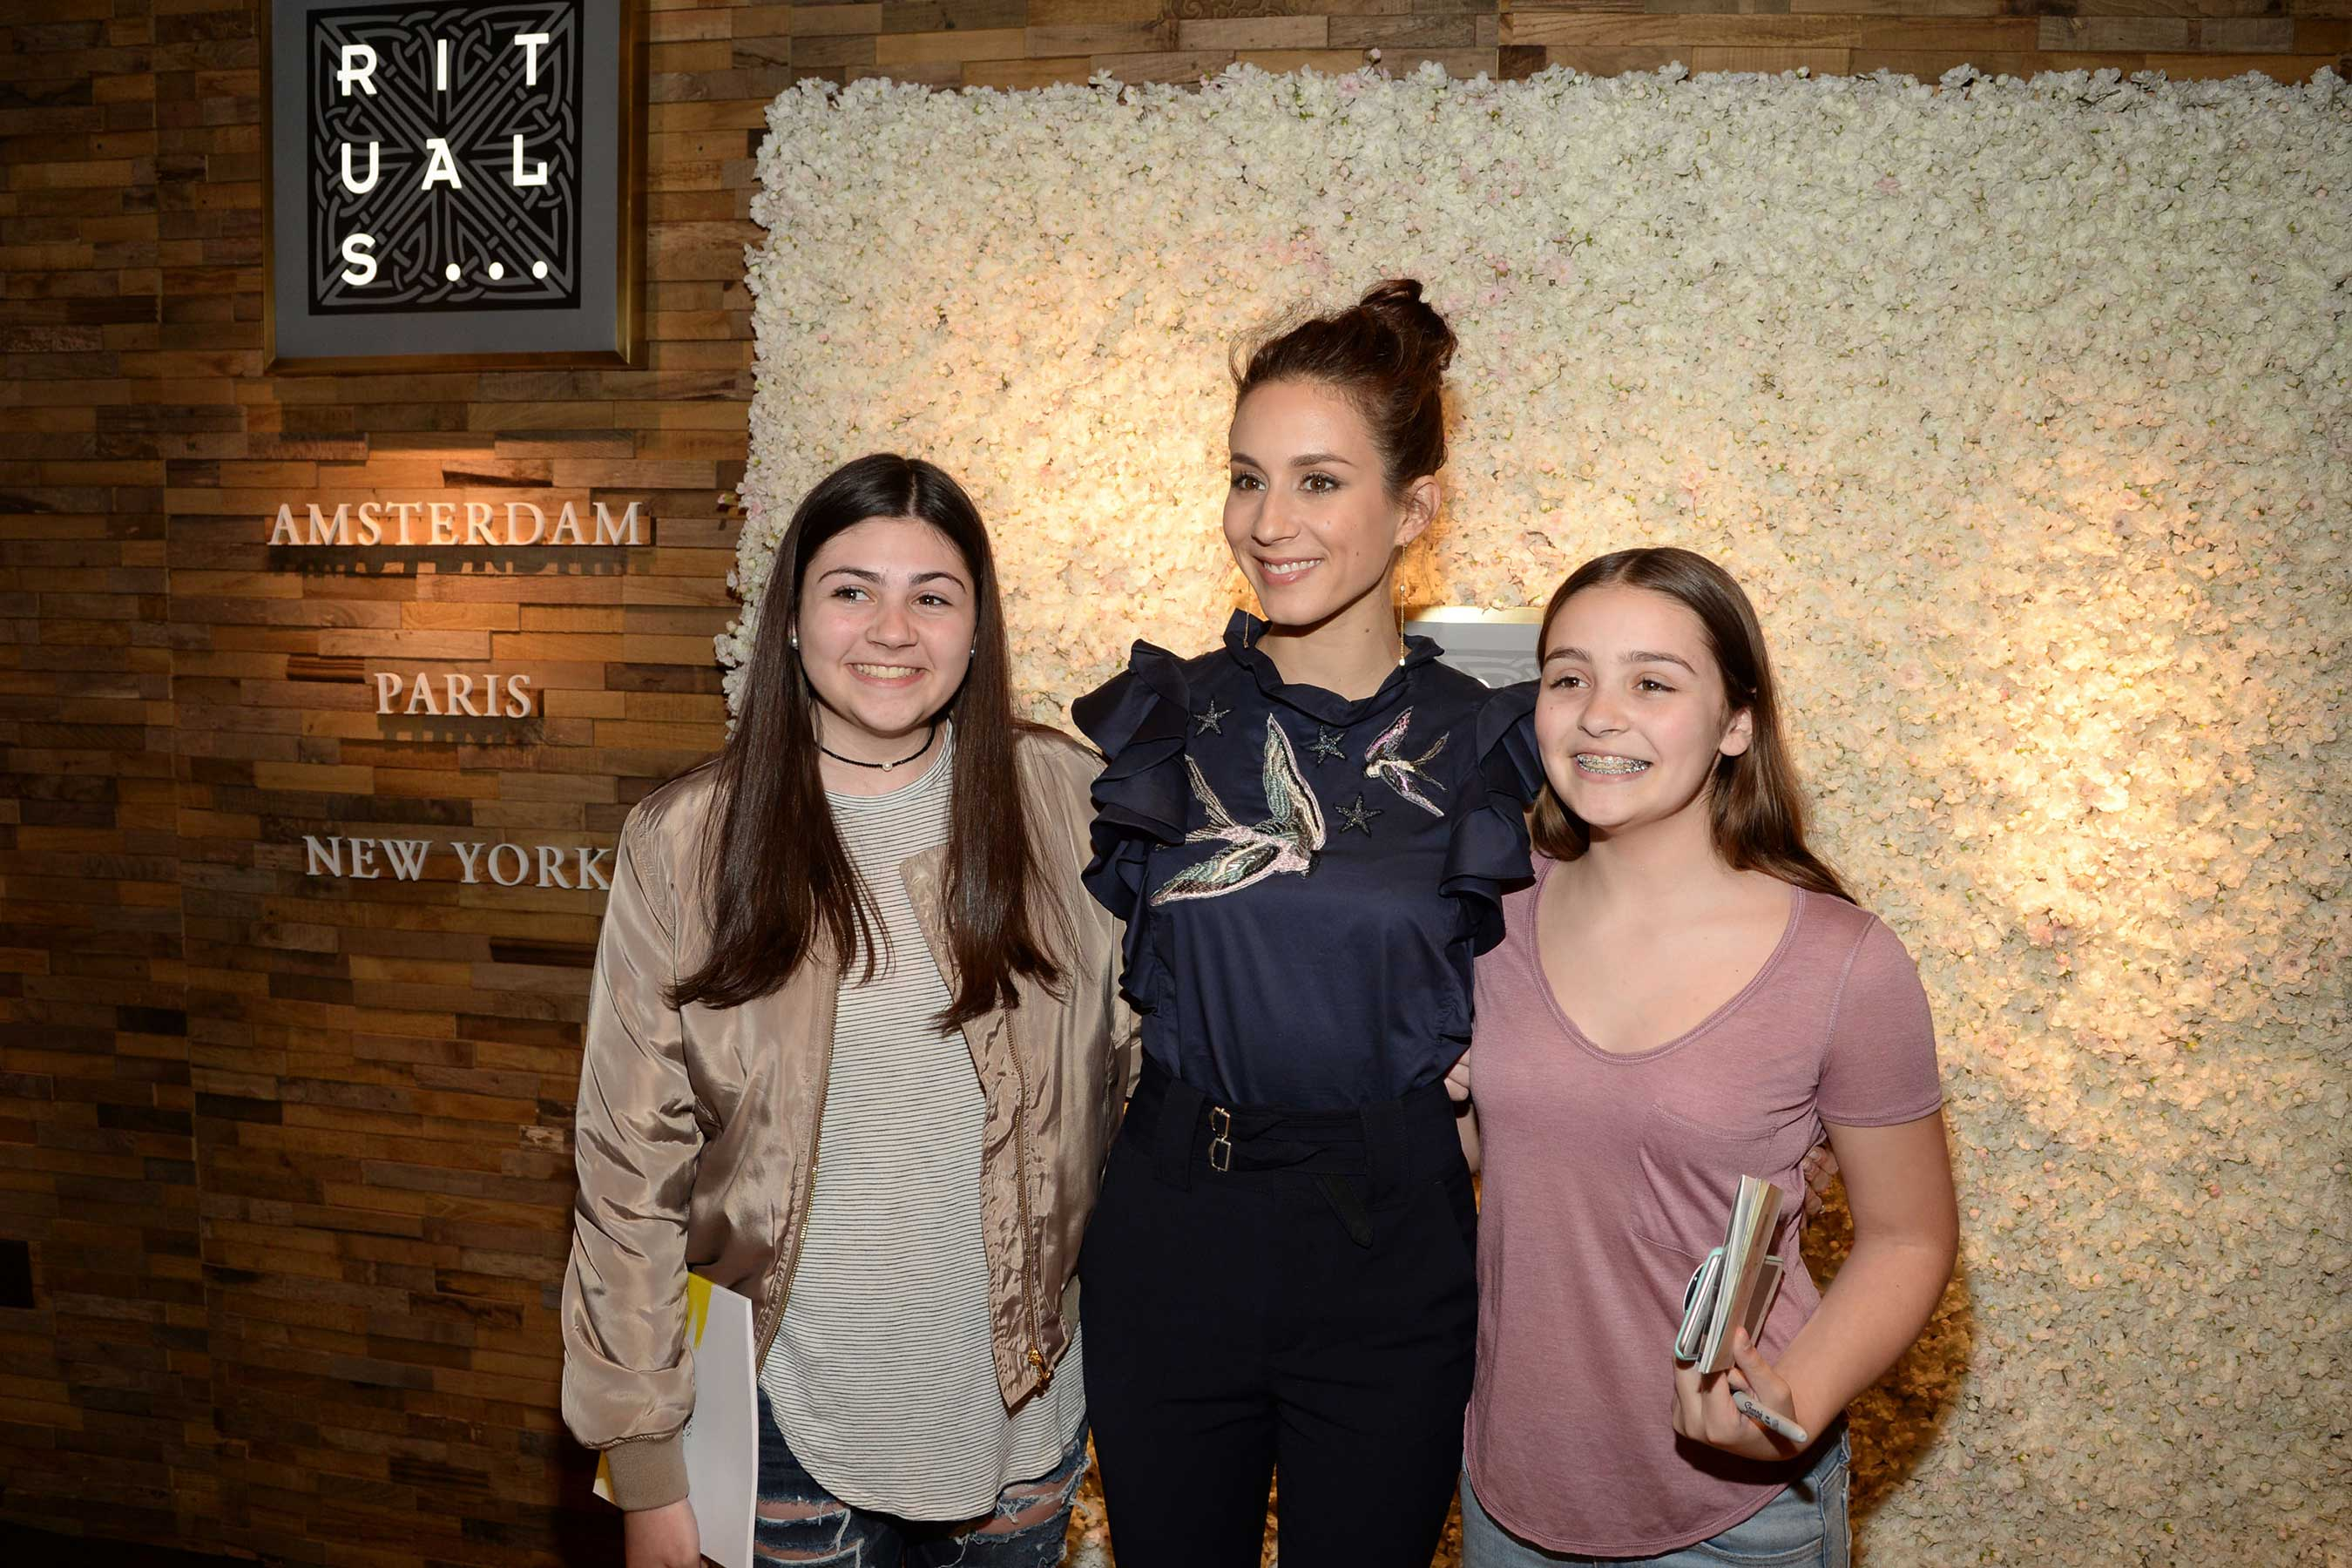 Troian Bellisario meets with fans at Rituals Cosmetics Fifth Avenue in NYC